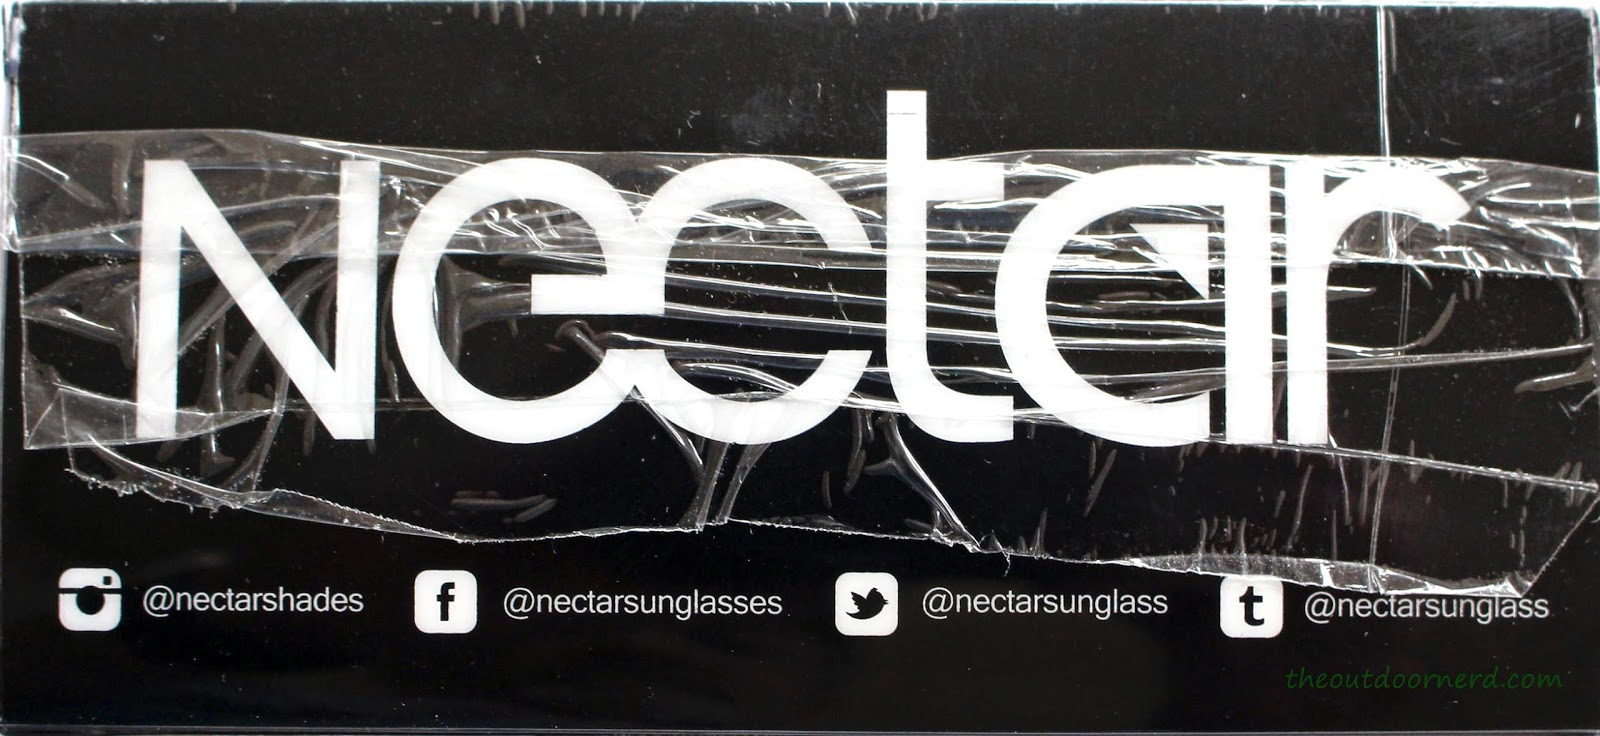 Nectar Cruze Sunglasses: Gallery View 1